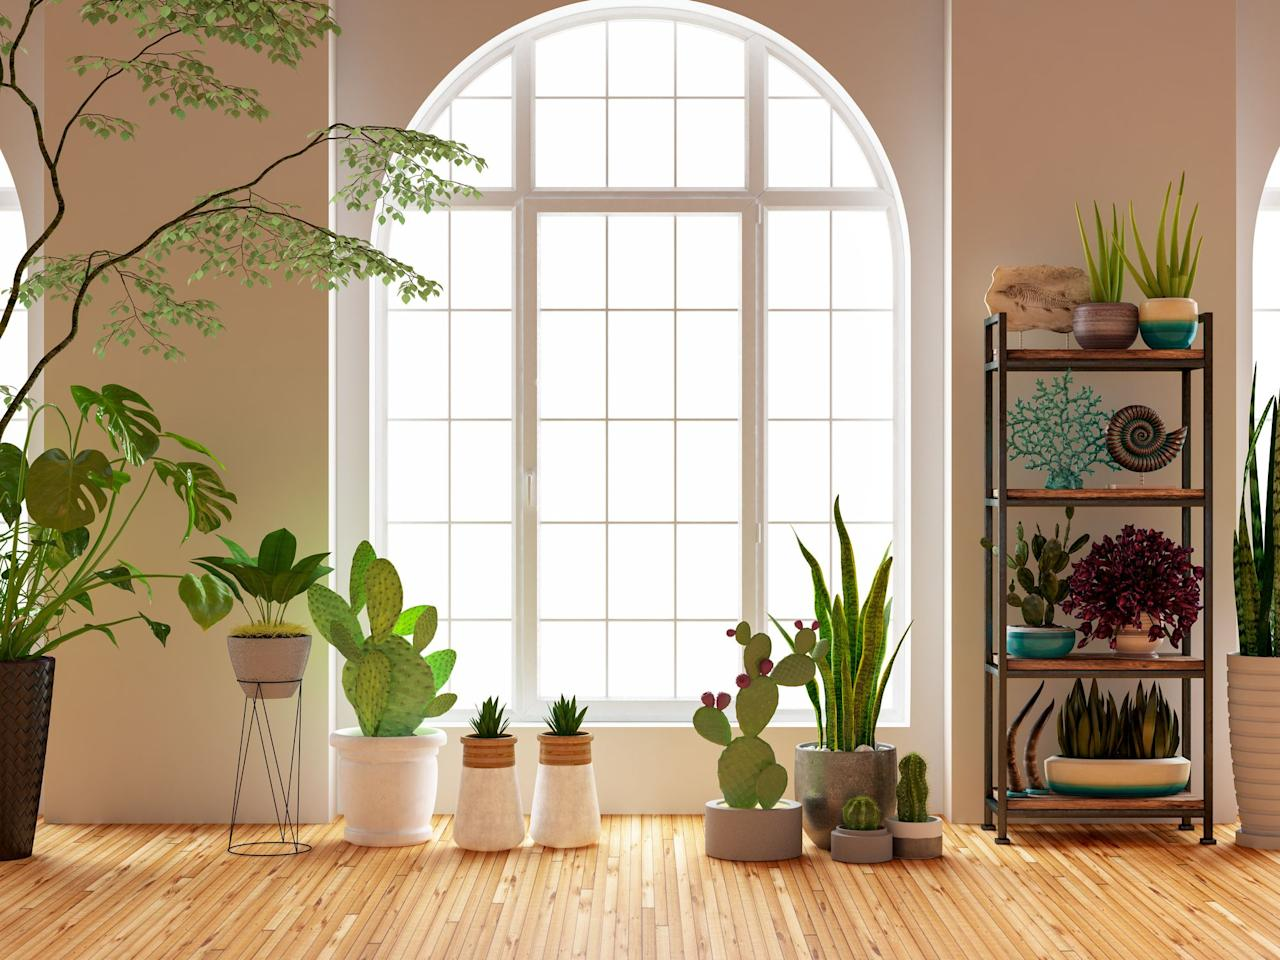 """<p>You've already cultivated your own <a href=""""https://www.veranda.com/outdoor-garden/g1573/landscaping-ideas/"""">captivating garden</a>, but now it's time to move that verdant oasis inside. Leafy, flourishing houseplants not only add a pop of green to your space, but also help to purify the air within your home and spark creativity. While the <a href=""""https://www.veranda.com/outdoor-garden/g28460765/autumn-flowers-and-plants/"""" target=""""_blank"""">bountiful greenery and blooming flowers</a> are already stunning on their own,  stylish, <a href=""""https://www.veranda.com/outdoor-garden/g31940674/outdoor-planters/"""" target=""""_blank"""">one-of-a-kind planters</a> and pots offer the perfect opportunity to experiment with colorful motifs and sculptural shapes. </p><p>Instead of crowding your windowsills with plain terra-cotta pots, look for clever designs from local ceramists or dramatic stools to give your plants the boost they need. Whether you're a rising plant expert looking to repot your growing succulent collection or trying to dress up <a href=""""https://www.veranda.com/decorating-ideas/g32677341/best-artificial-plants/"""" target=""""_blank"""">elegant artificial plants</a>, this list of the most charming indoor planters has got you covered. Oh, and don't forget to water those beauties. </p>"""